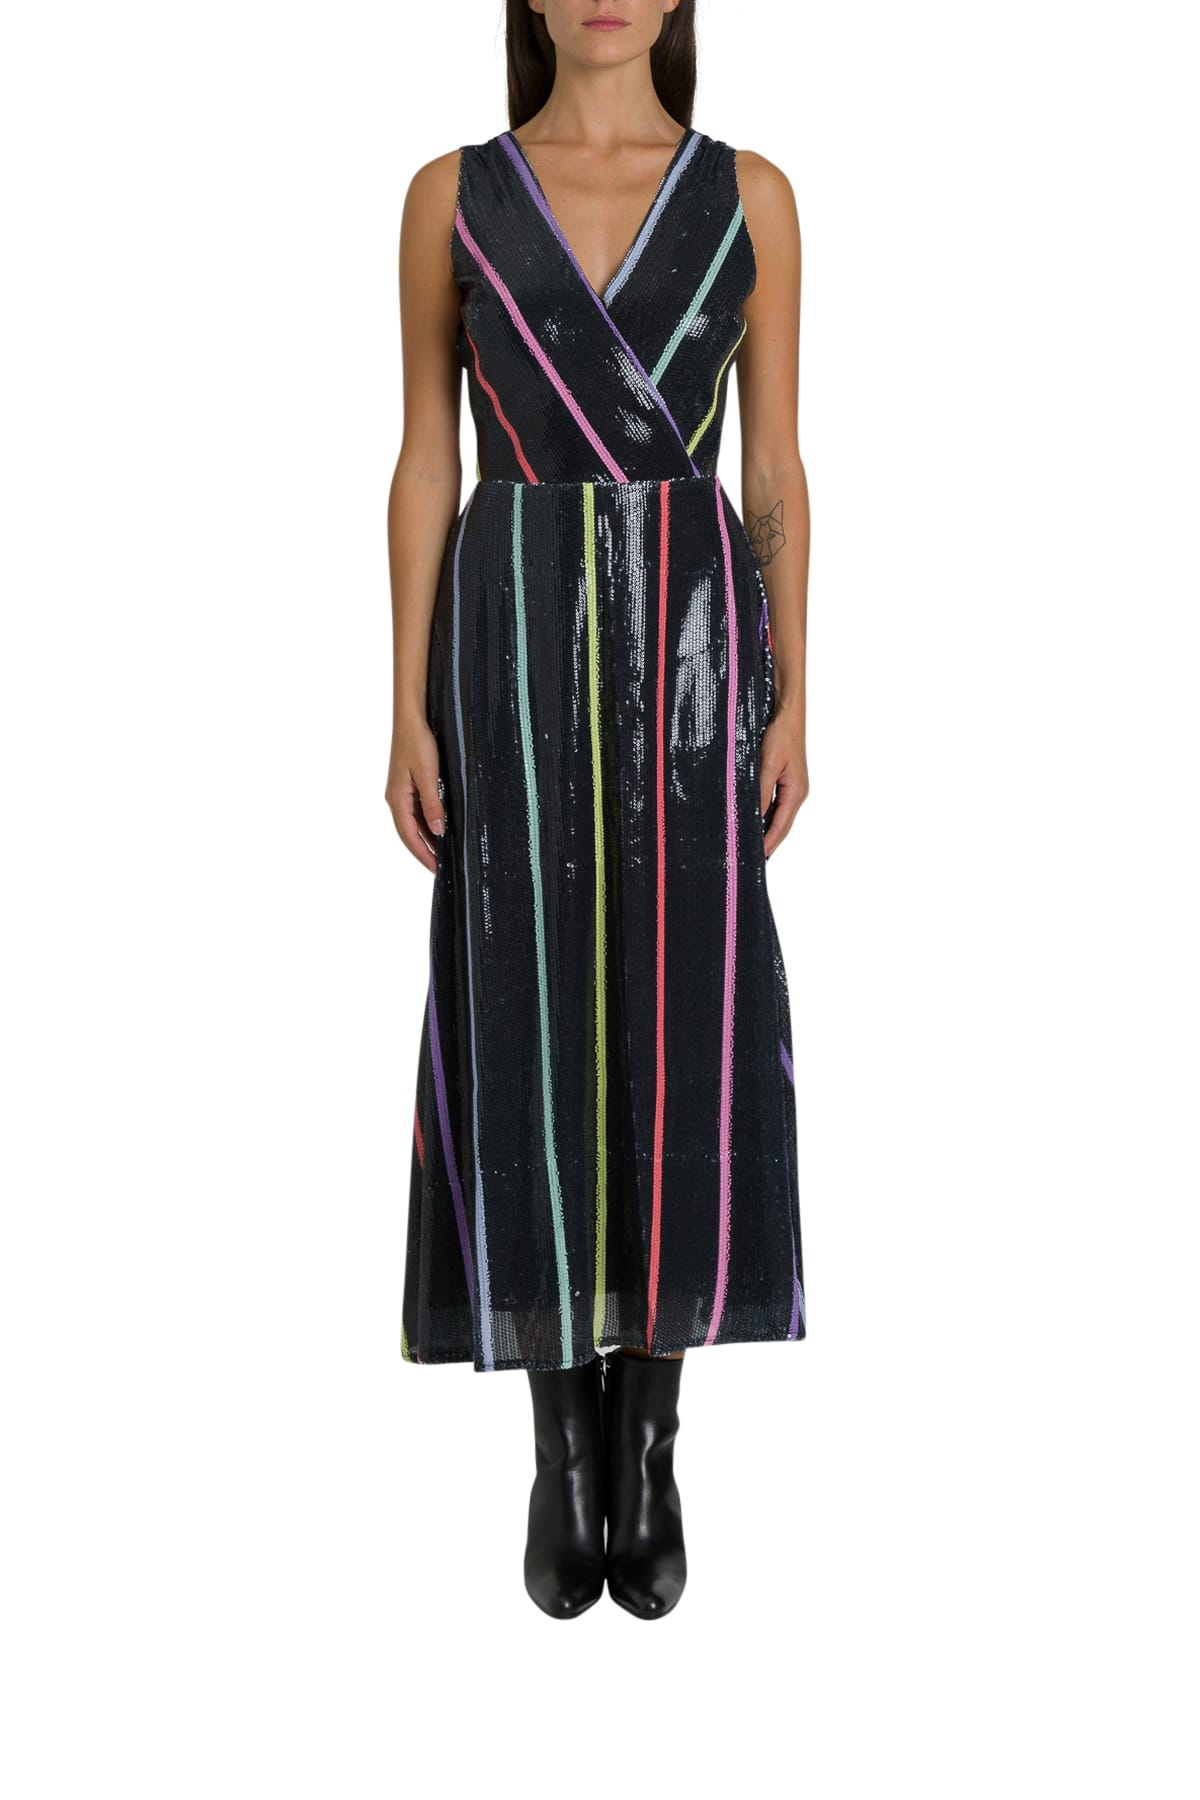 Olivia Rubin Thea Dress